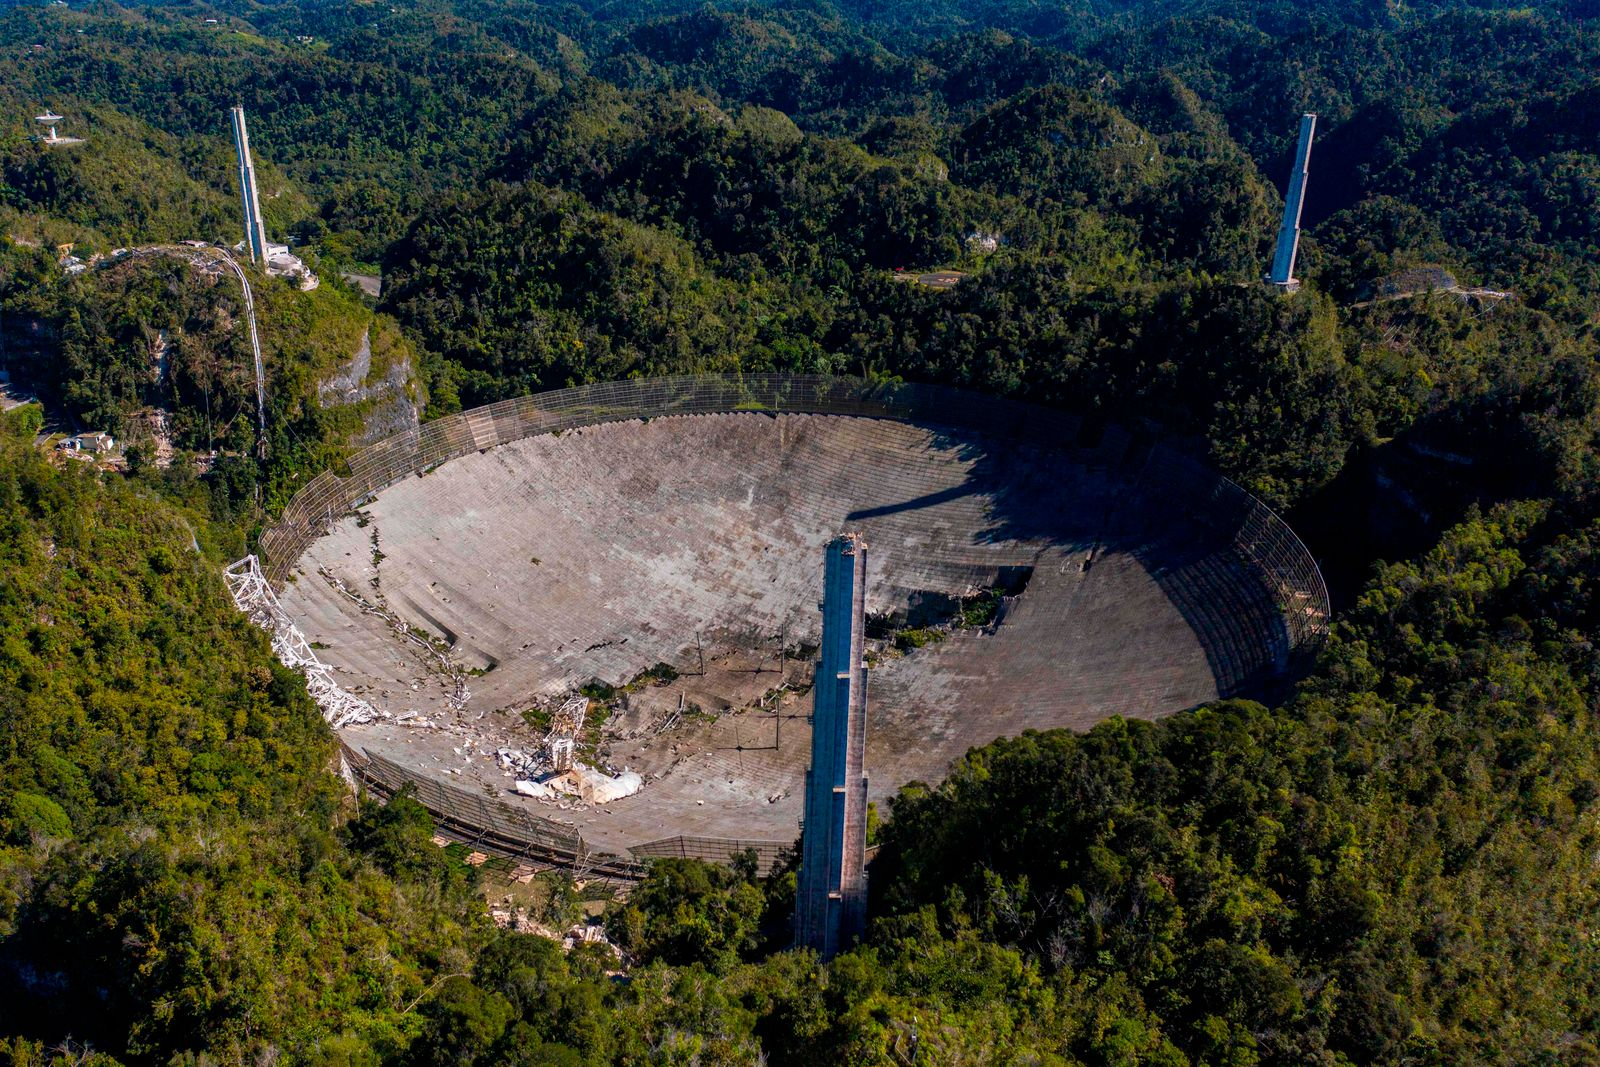 TOPSHOT-PUERTORICO-SCIENCE-ASTRONOMY-OBSERVATORY-US